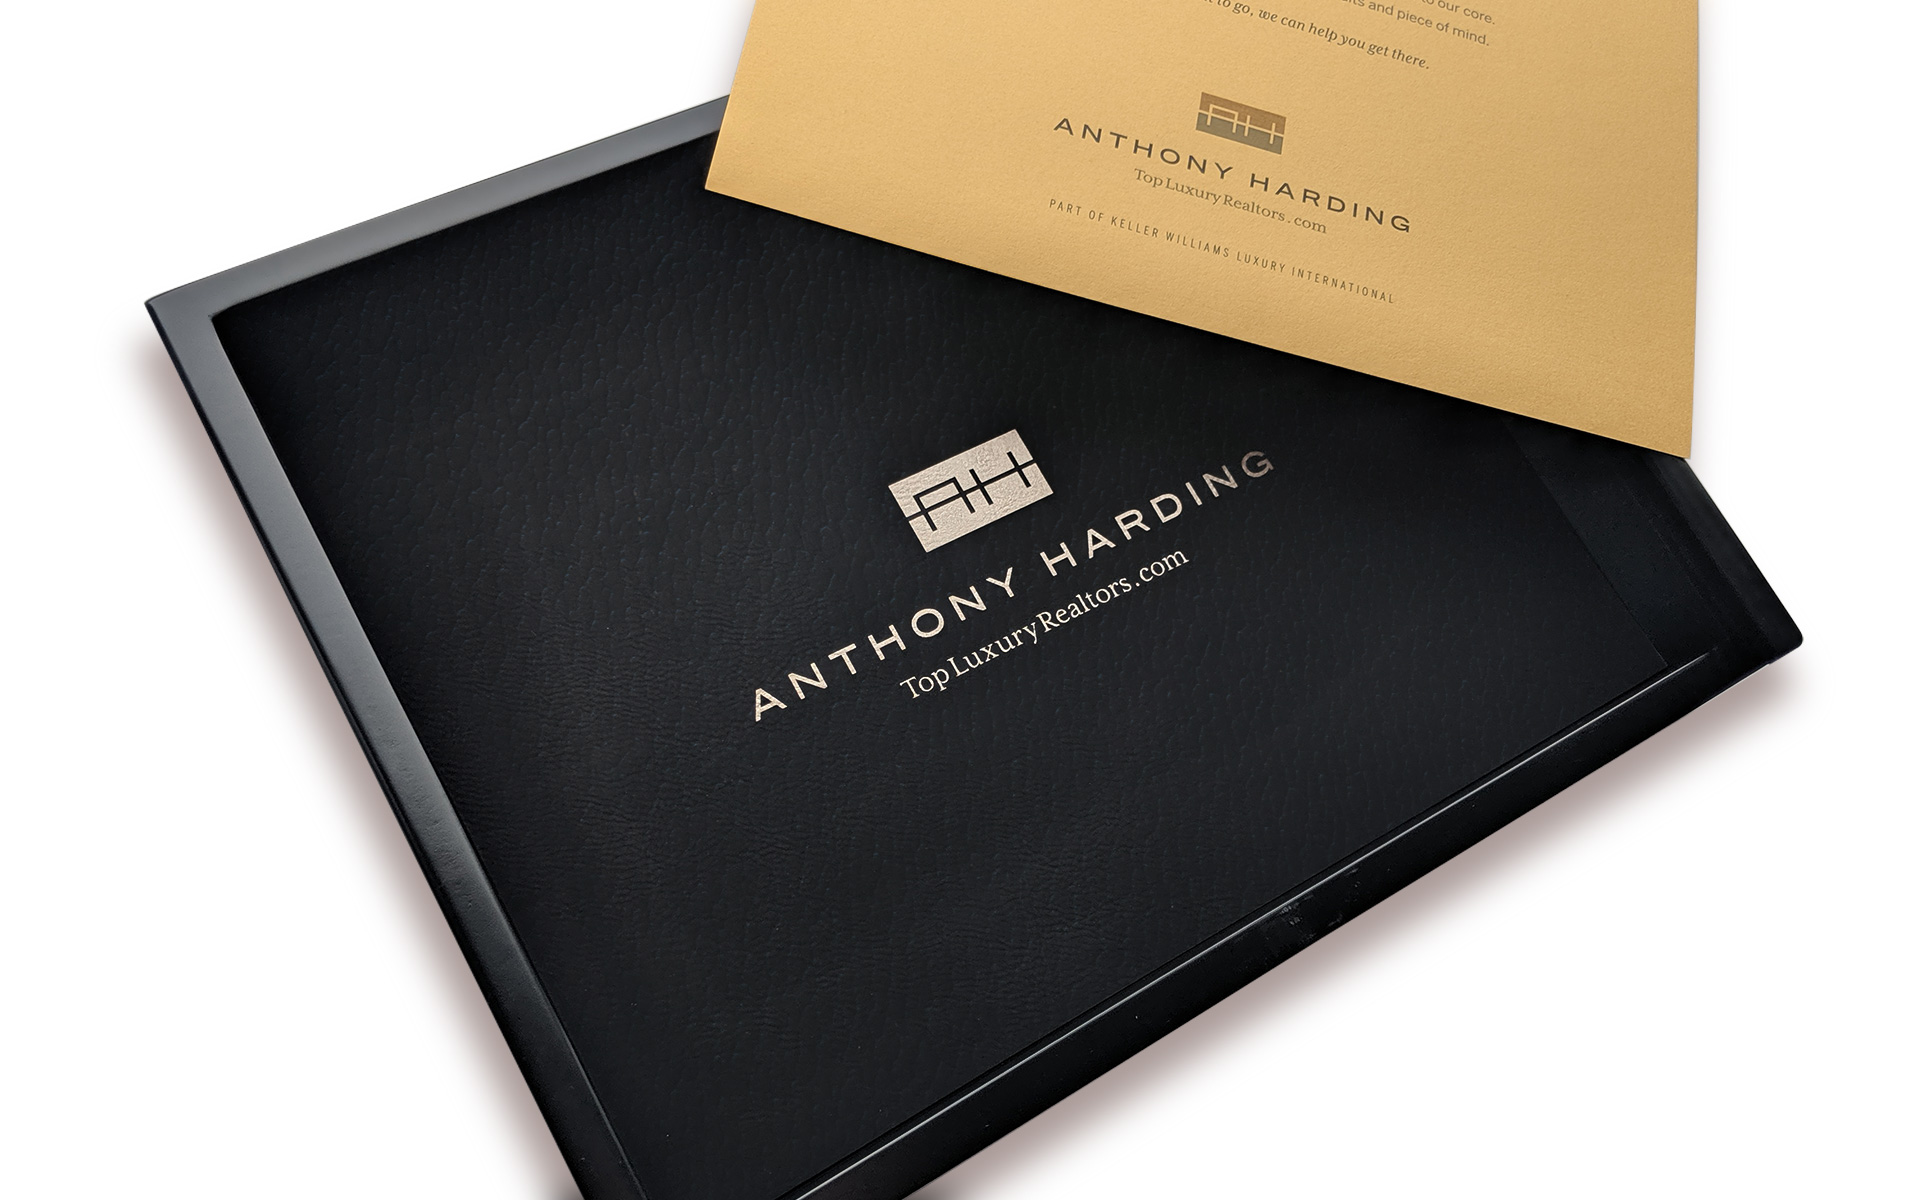 Anthony Harding collateral